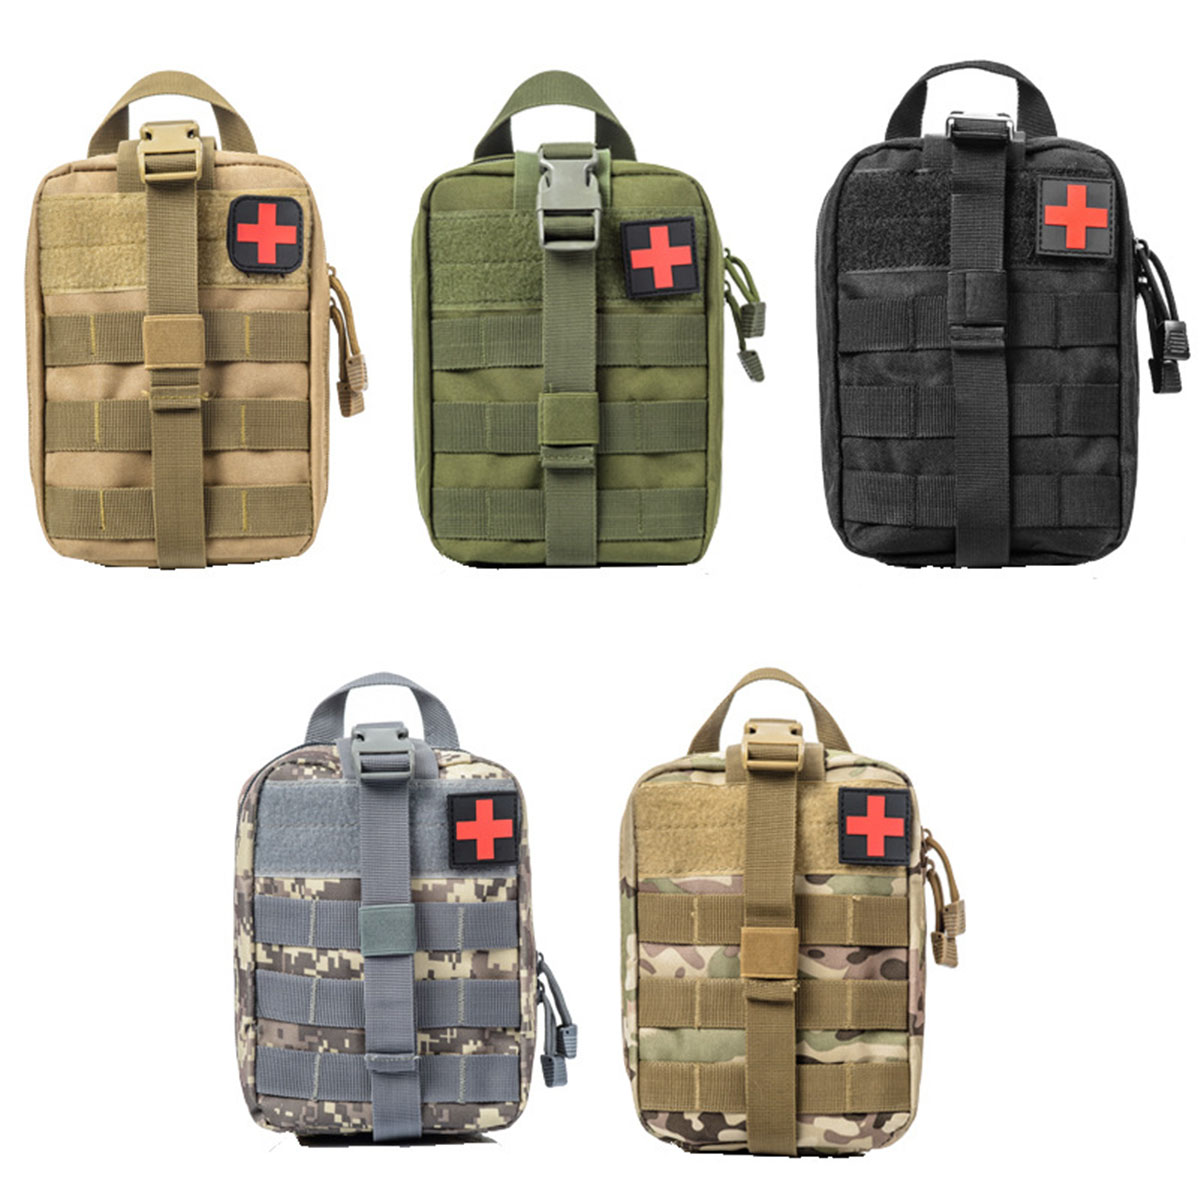 600D Nylon Outdoor Tactical Medical Bag Travel First Aid Kit Waterproof Pack Camping Climbing Bag Emergency Case Survival600D Nylon Outdoor Tactical Medical Bag Travel First Aid Kit Waterproof Pack Camping Climbing Bag Emergency Case Survival